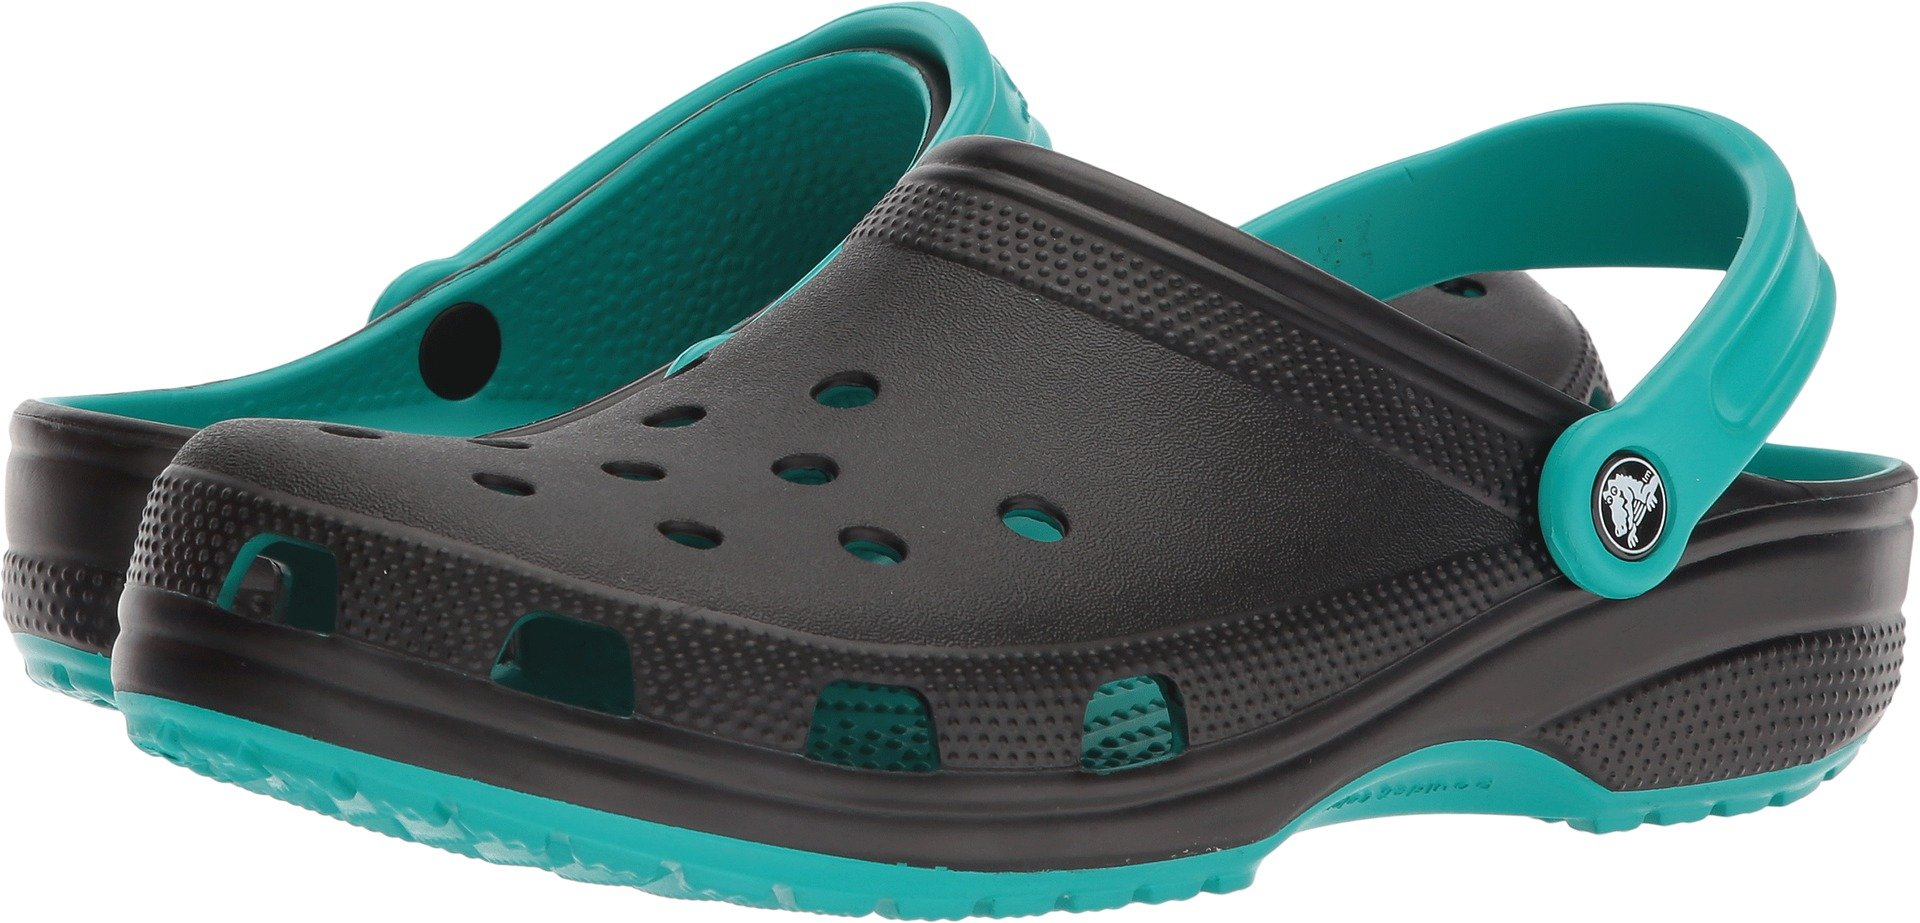 Crocs Classic Carbon Graphic CLG Clog, Tropical Teal, 11 US Men/ 13 US Women M US by Crocs